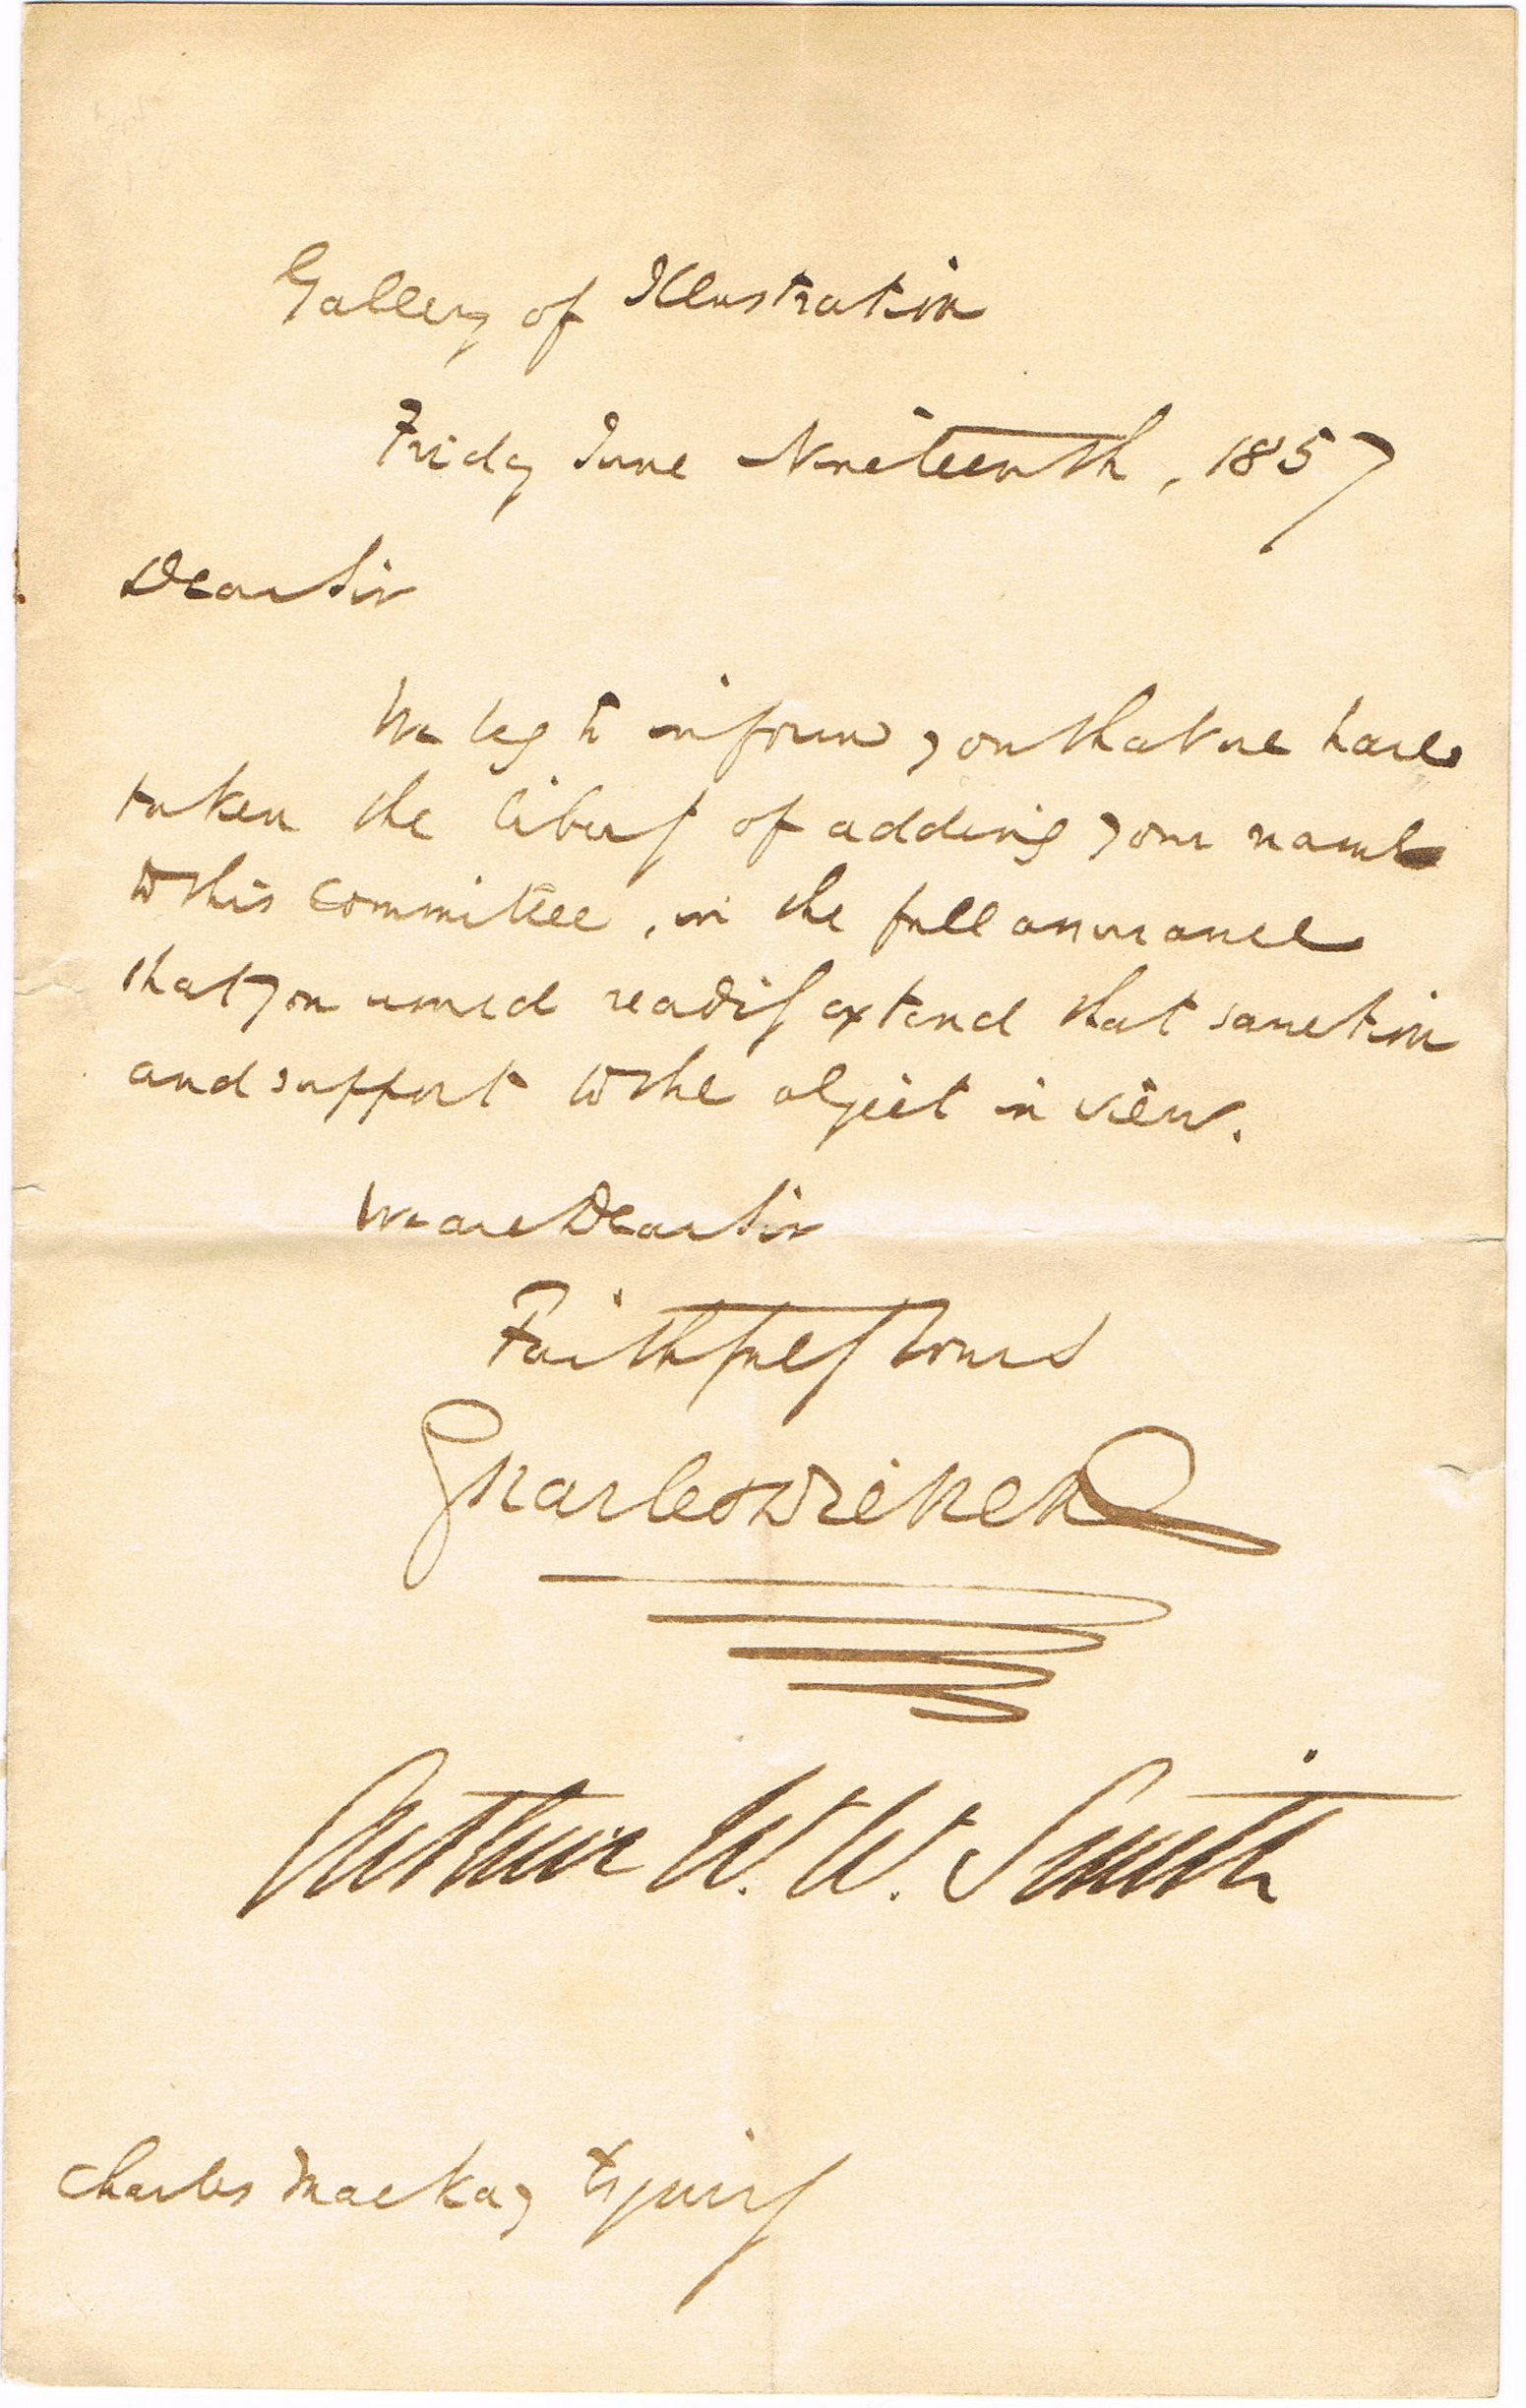 Charles Dickens autographed note